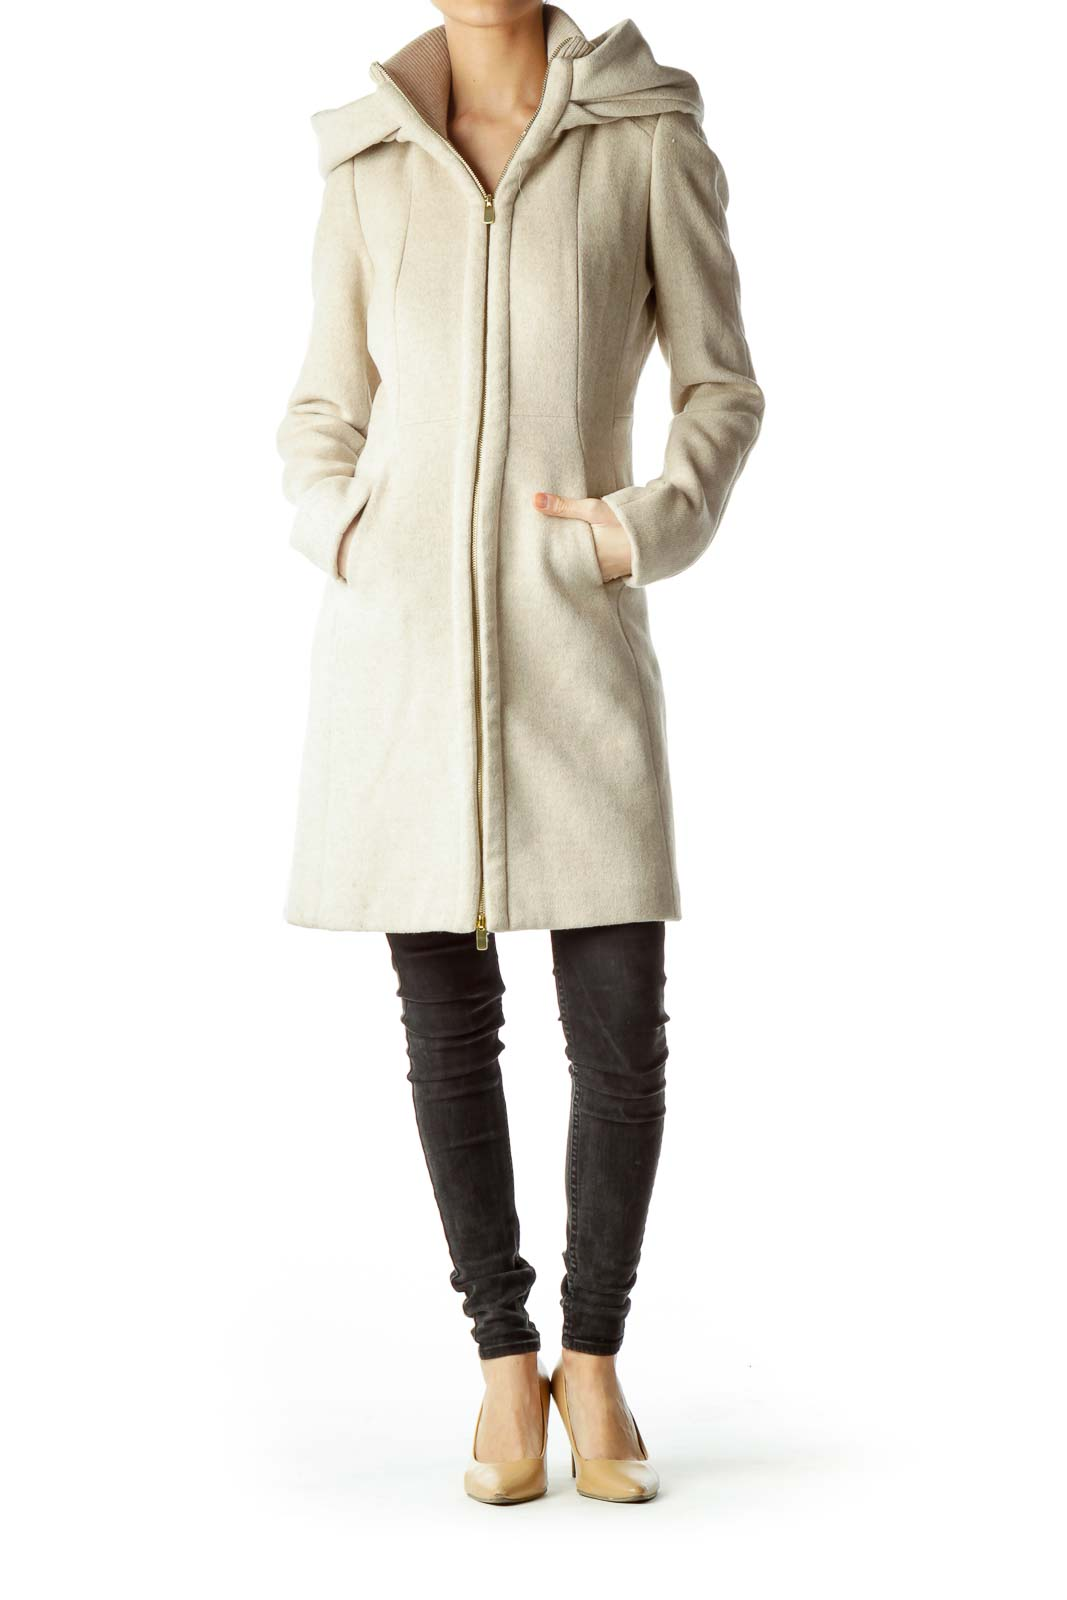 Beige Hooded Coat with Gold Zipper